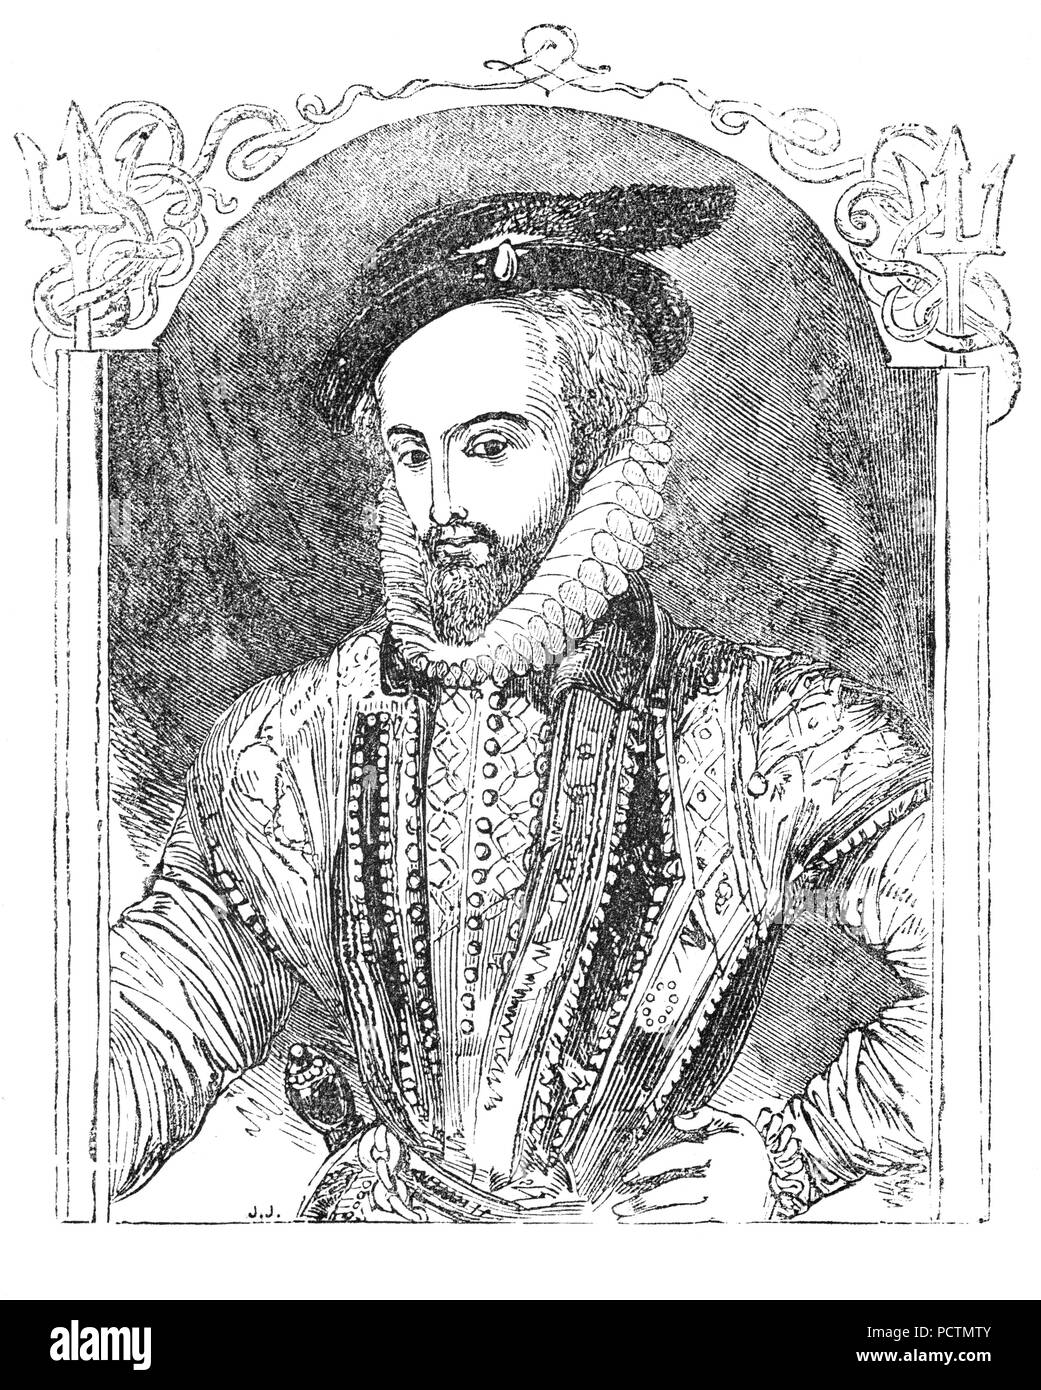 A Portrait of Sir Walter Raleigh (1554-1618) was an English landed gentleman, writer, poet, soldier, politician, courtier, spy and explorer. He  became a favourite of Queen Elizabeth I and in 1585, was knighted and appointed warden of the stannaries - the tin mines of Cornwall and Devon, Lord Lieutenant of Cornwall, and vice-admiral of the two counties. He sat in parliament as member for Devonshire in 1585 and 1586.  In the Armada year of 1588, Raleigh had some involvement with defence against the Spanish at Devon when his ship, the Ark Raleigh, became Lord High Admiral Howard's flagship. - Stock Image